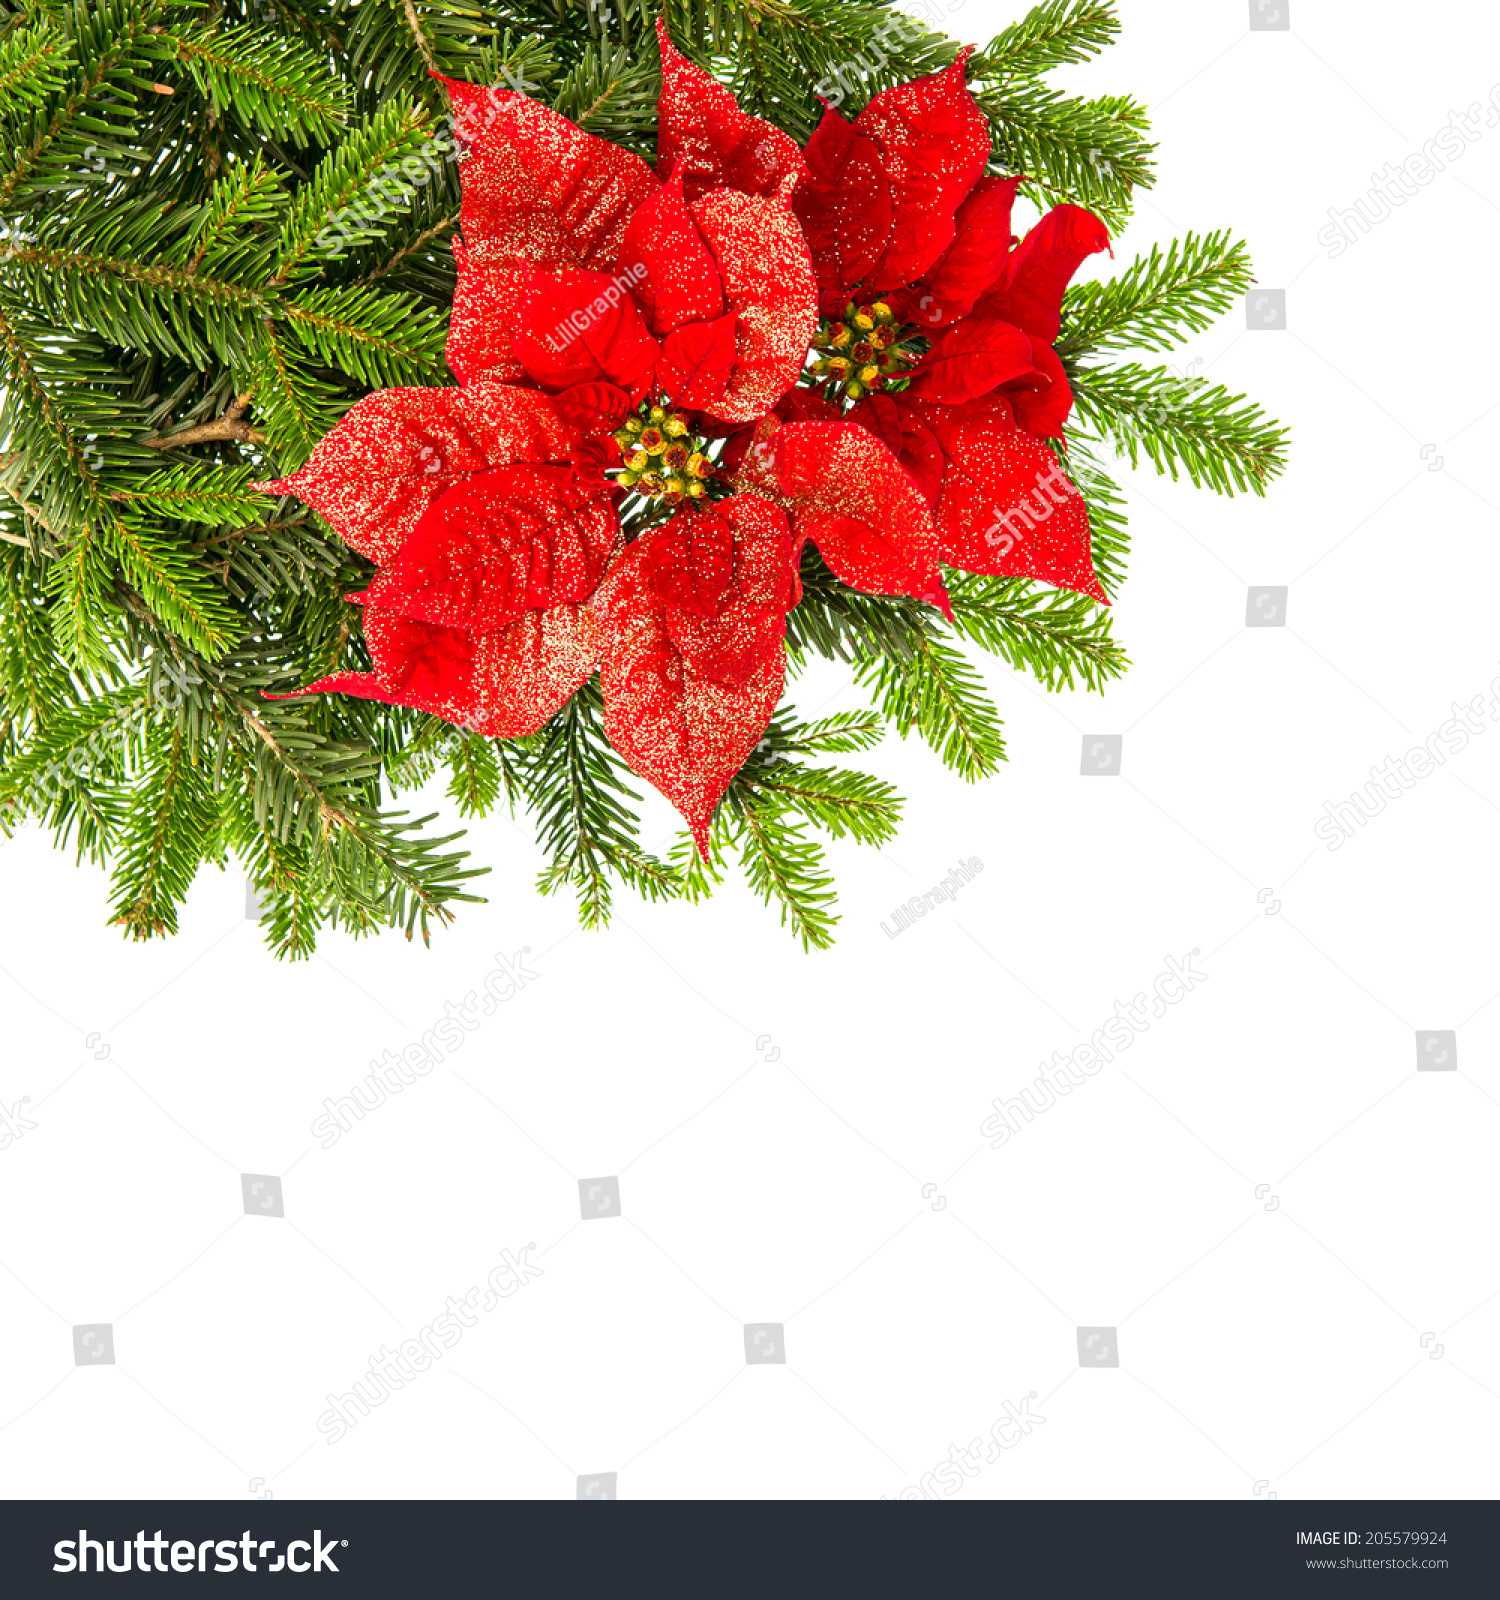 Christmas Tree Branch Red Poinsettia Flower Stock Photo ...  Red Christmas Tree White Background